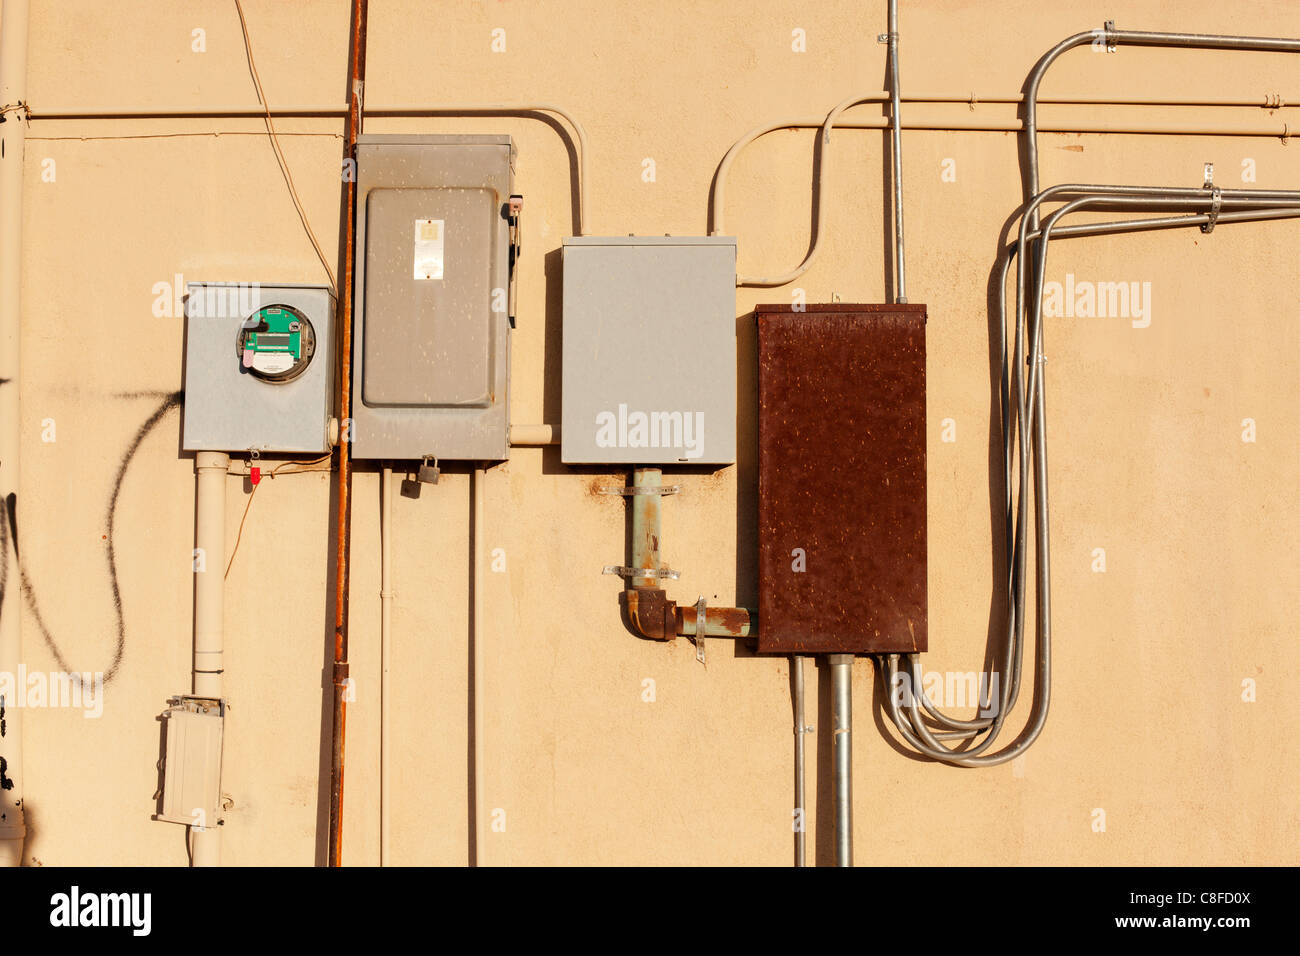 electrical fuse stock photos  u0026 electrical fuse stock